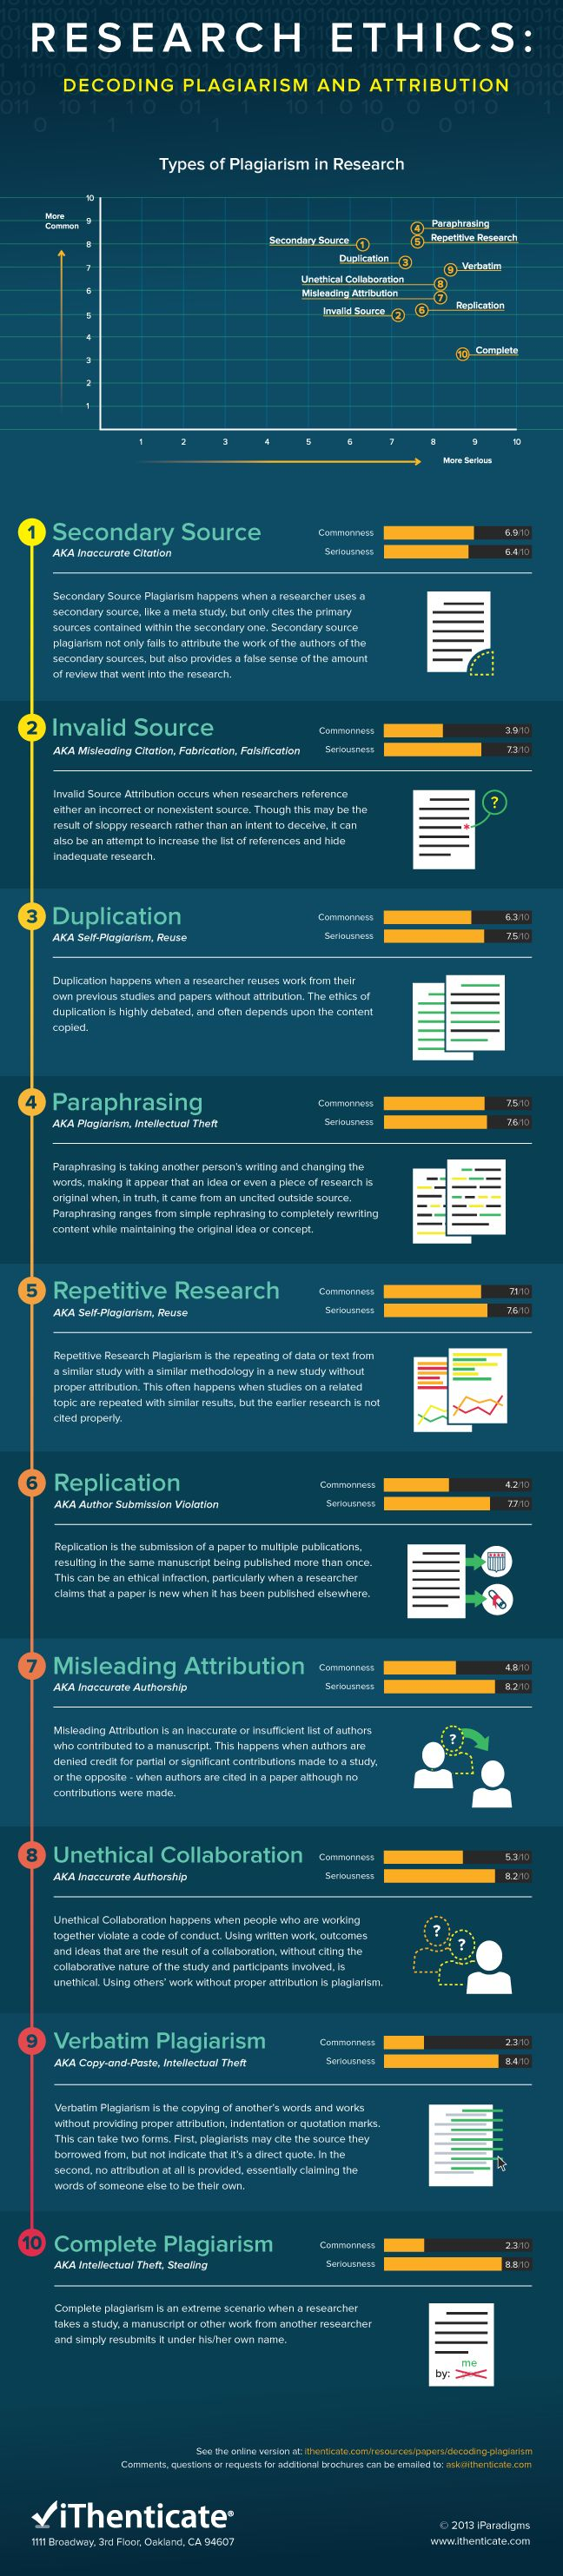 10 types of plagiarism in research | Exchanges